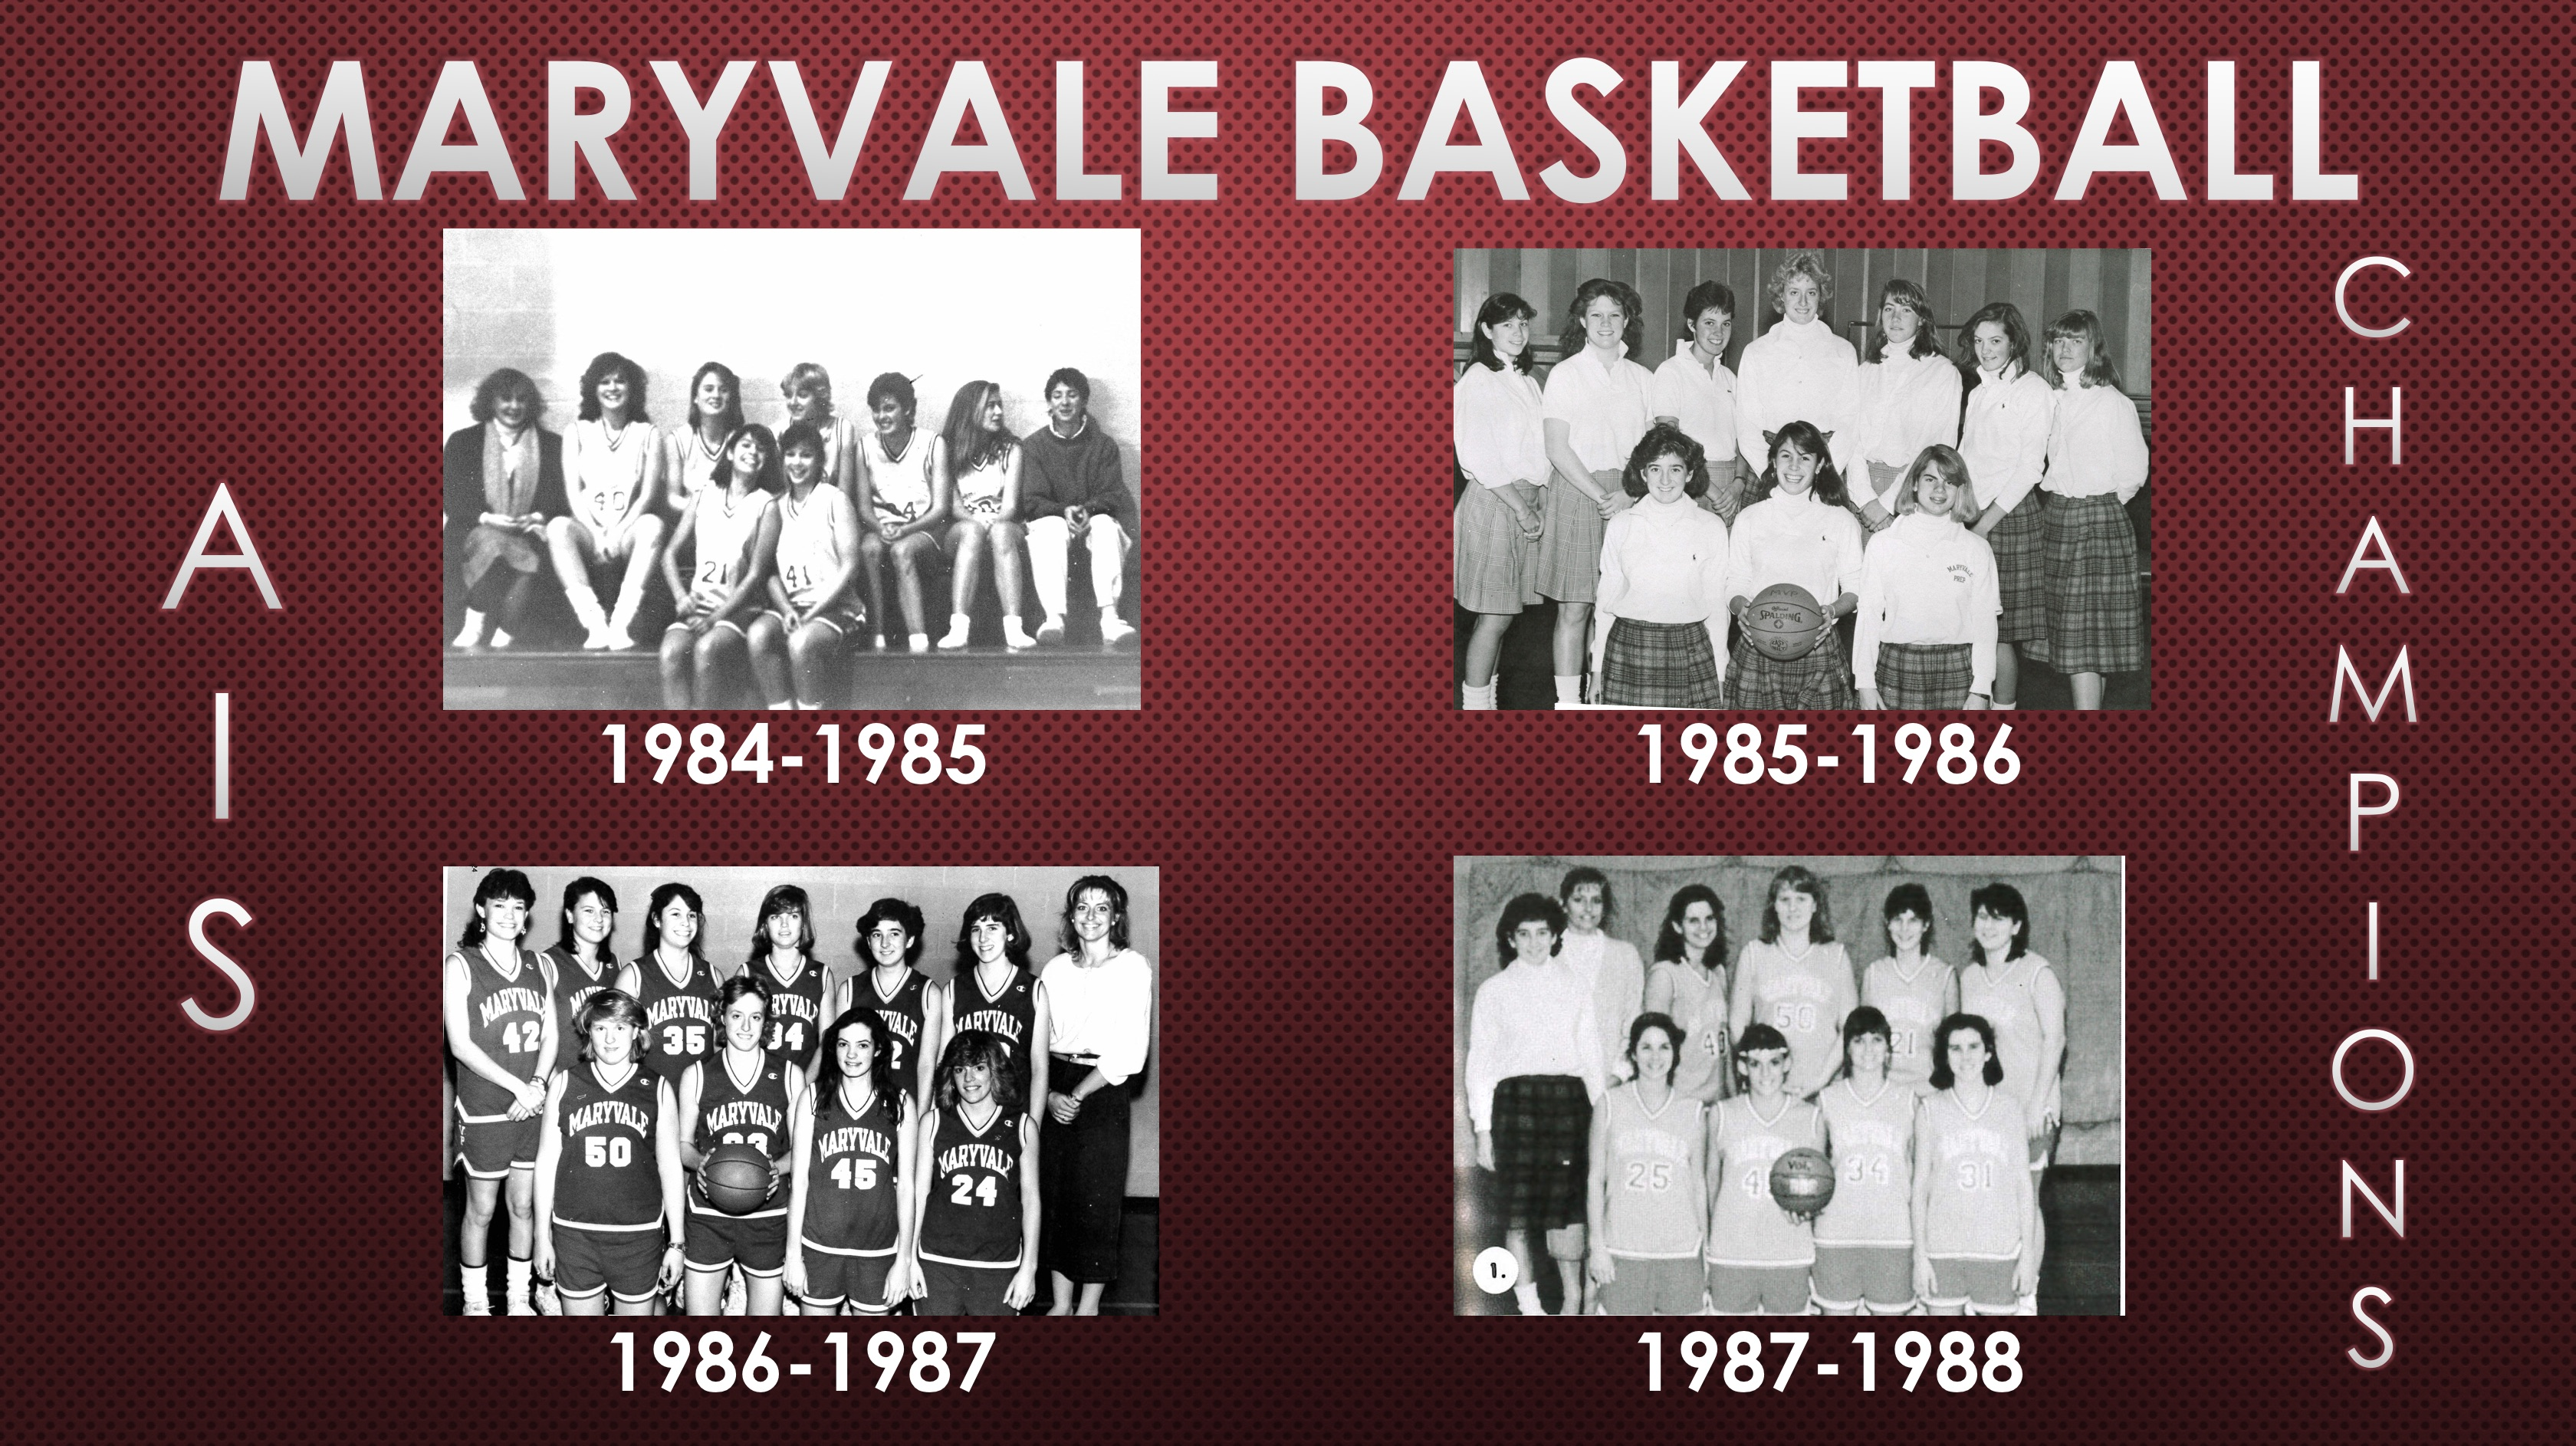 2018 Athletic Hall of Fame Inductee: Basketball Teams from 1984-1988